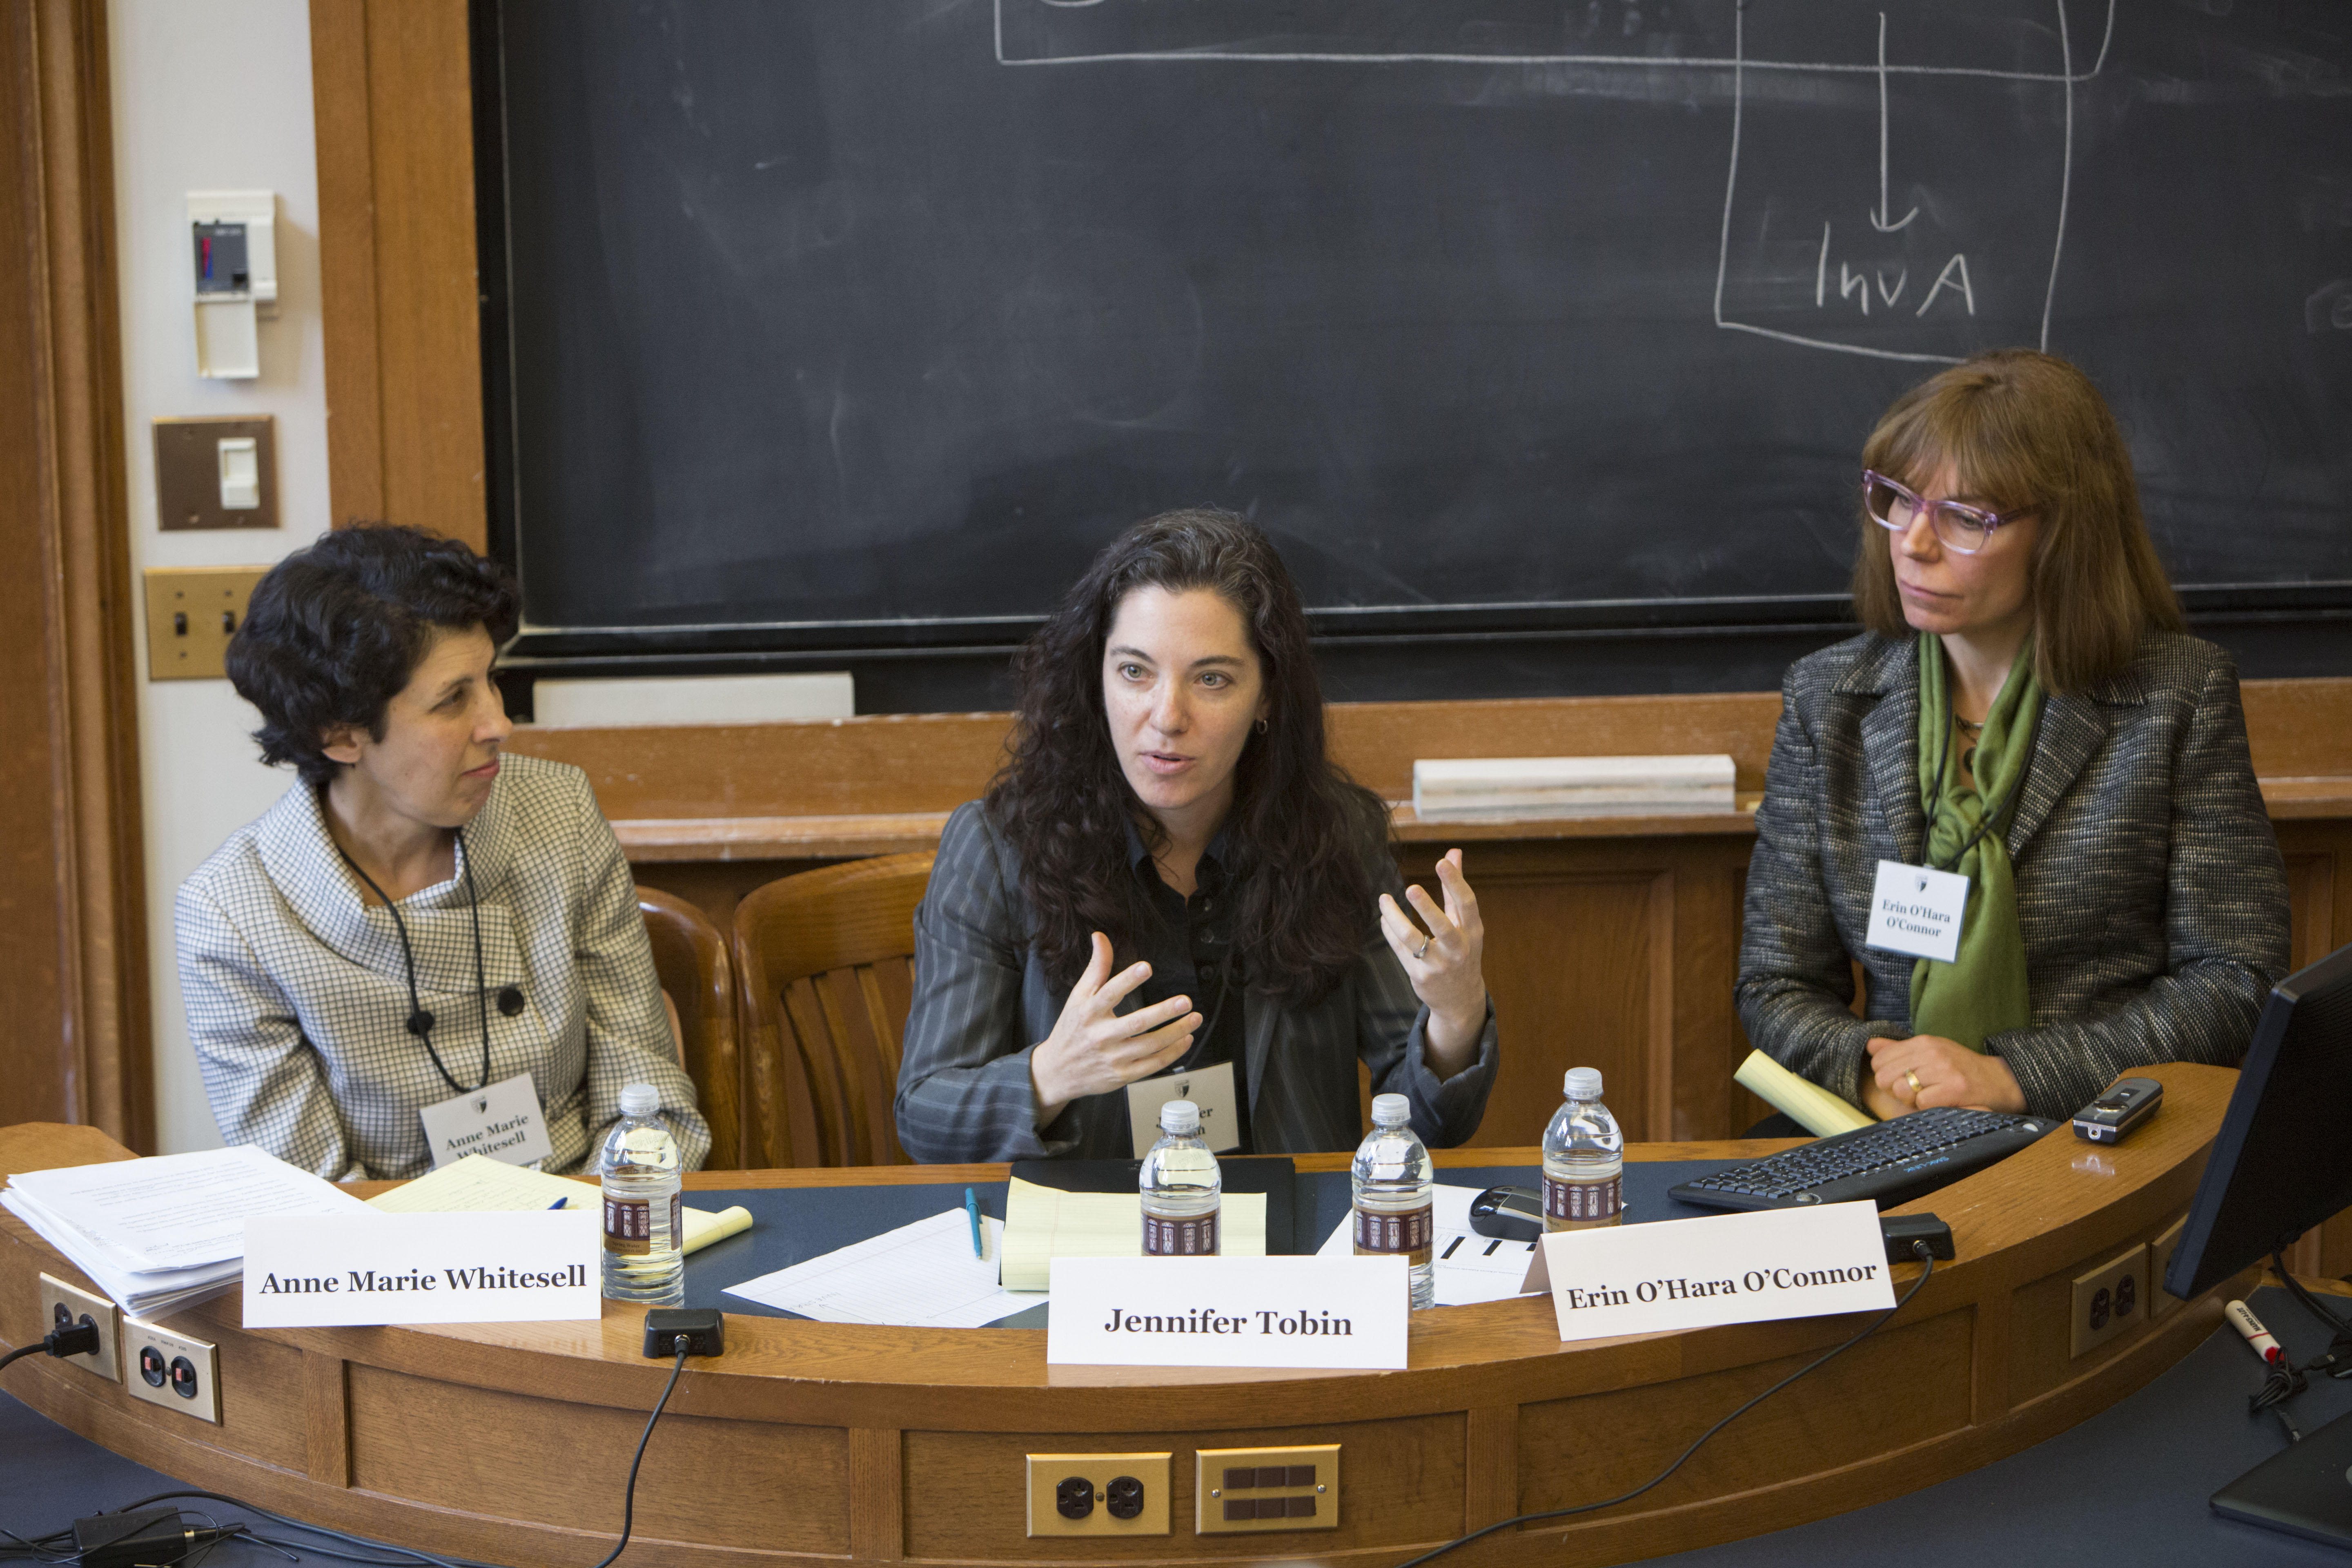 Anne Marie Whitesell, Georgetown Public Policy Prof. Jennifer Tobin, and Vanderbilt Law Prof. Erin O'Hara O'Connor